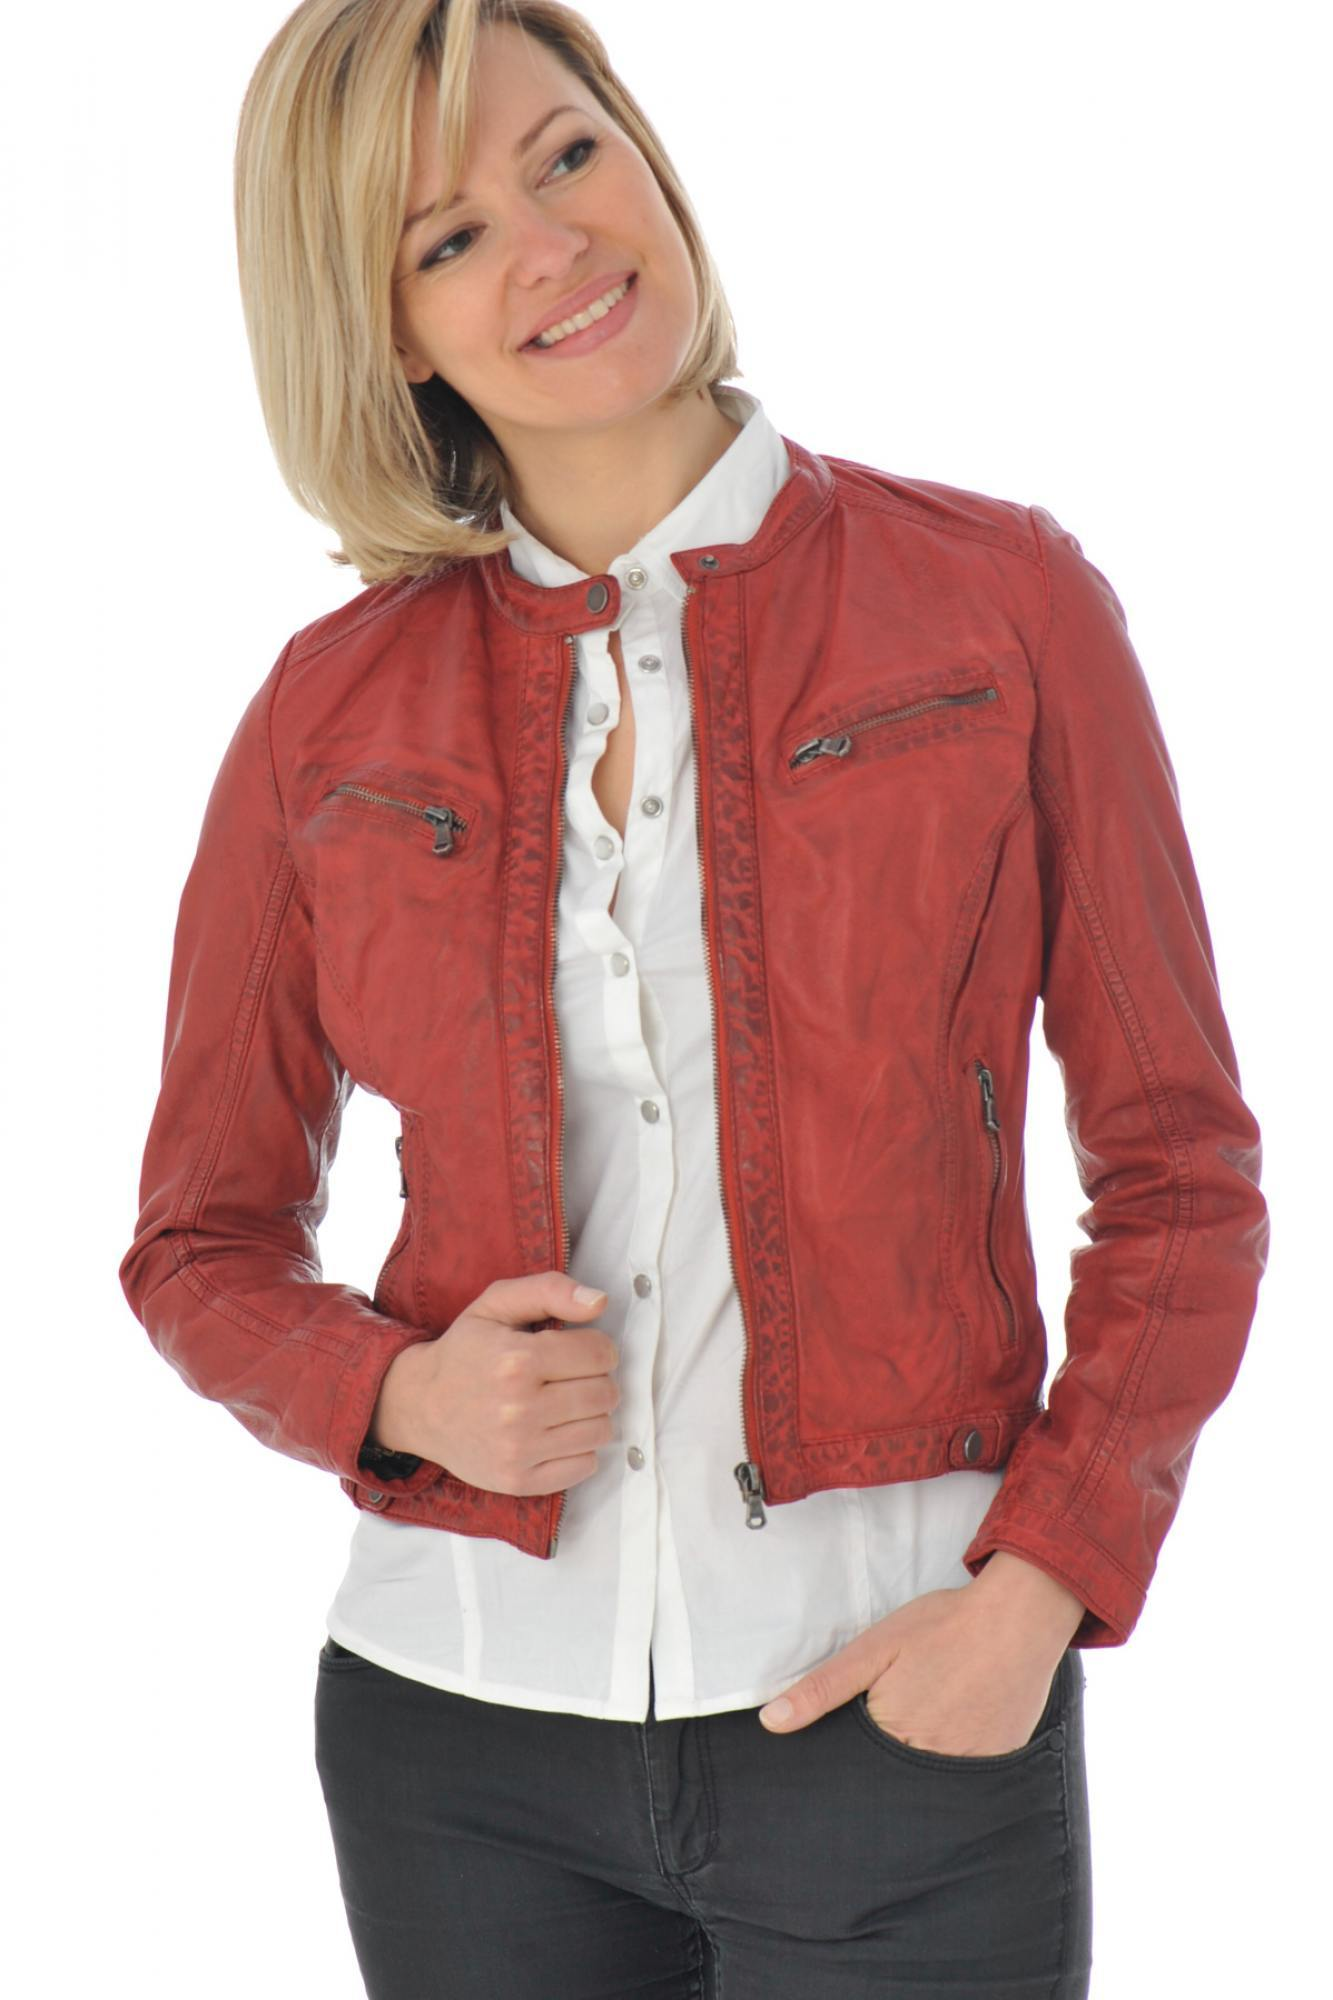 Blouson Diana calista red